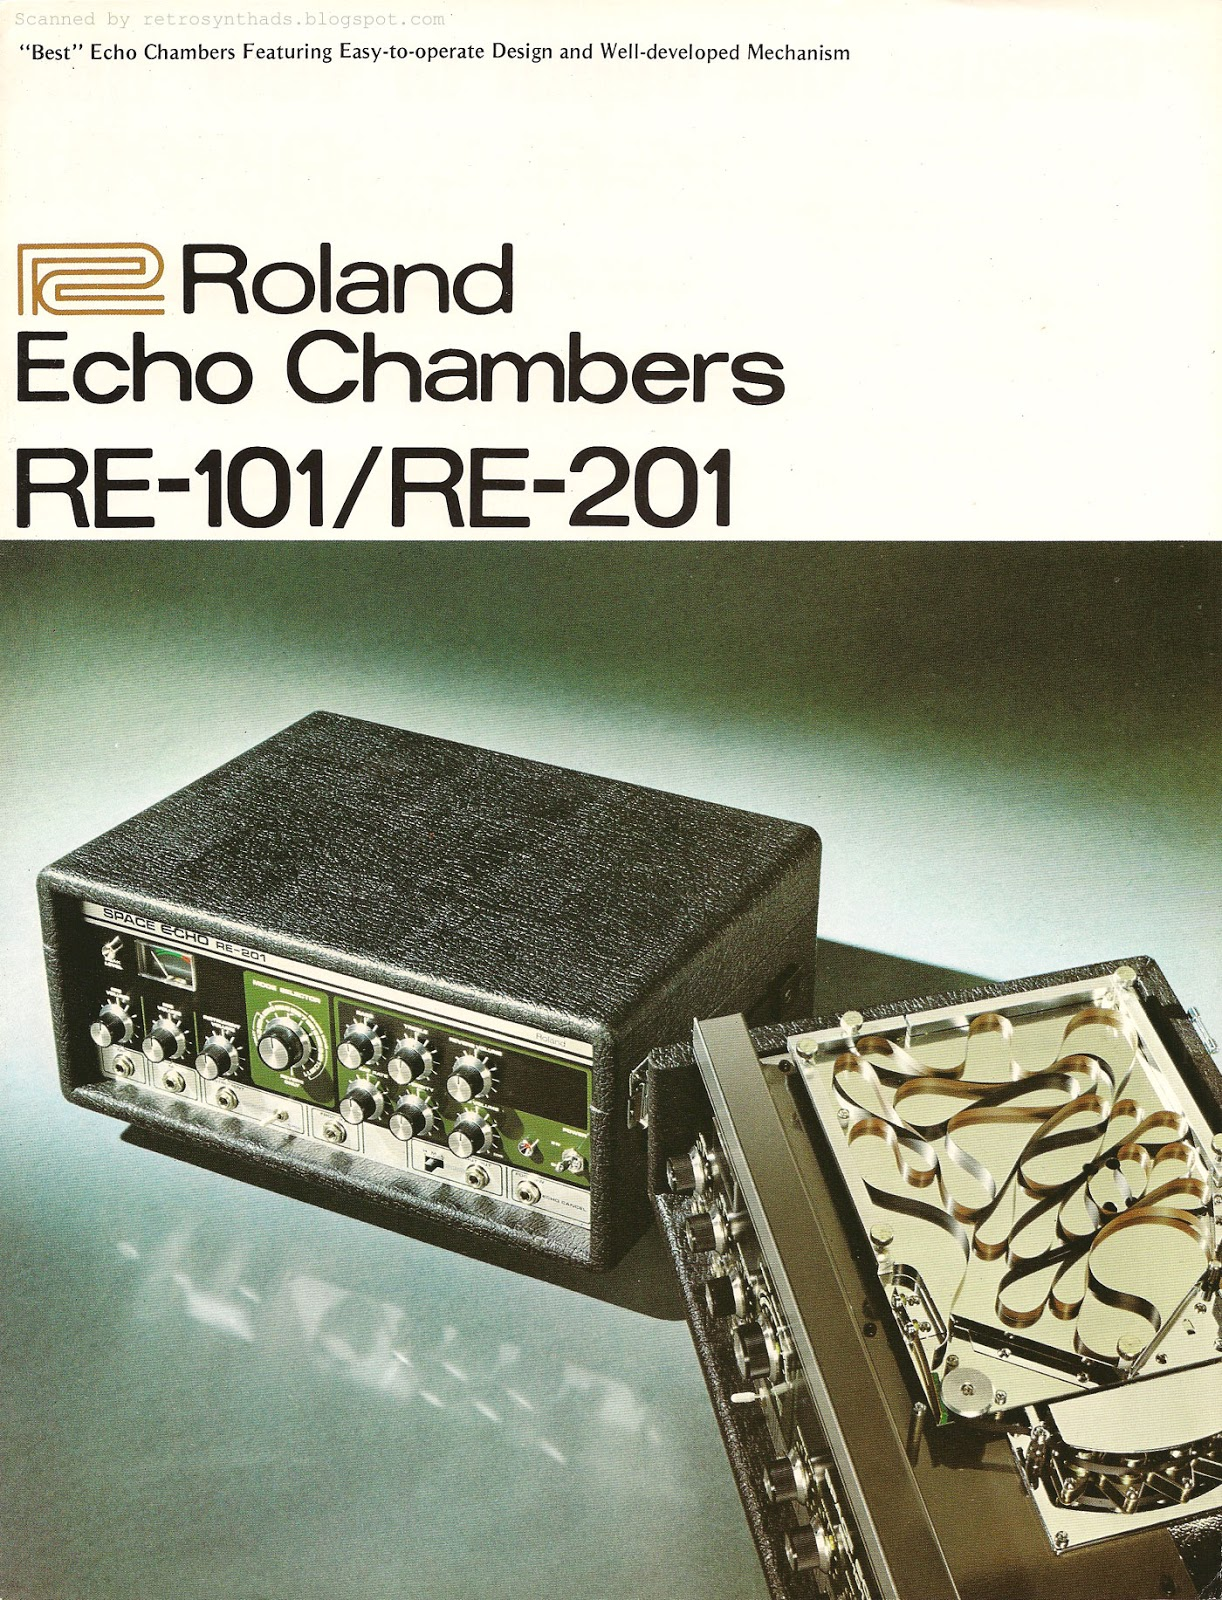 http://retrosynthads.blogspot.ca/2012/10/roland-echo-chambers-re-101re-201.html